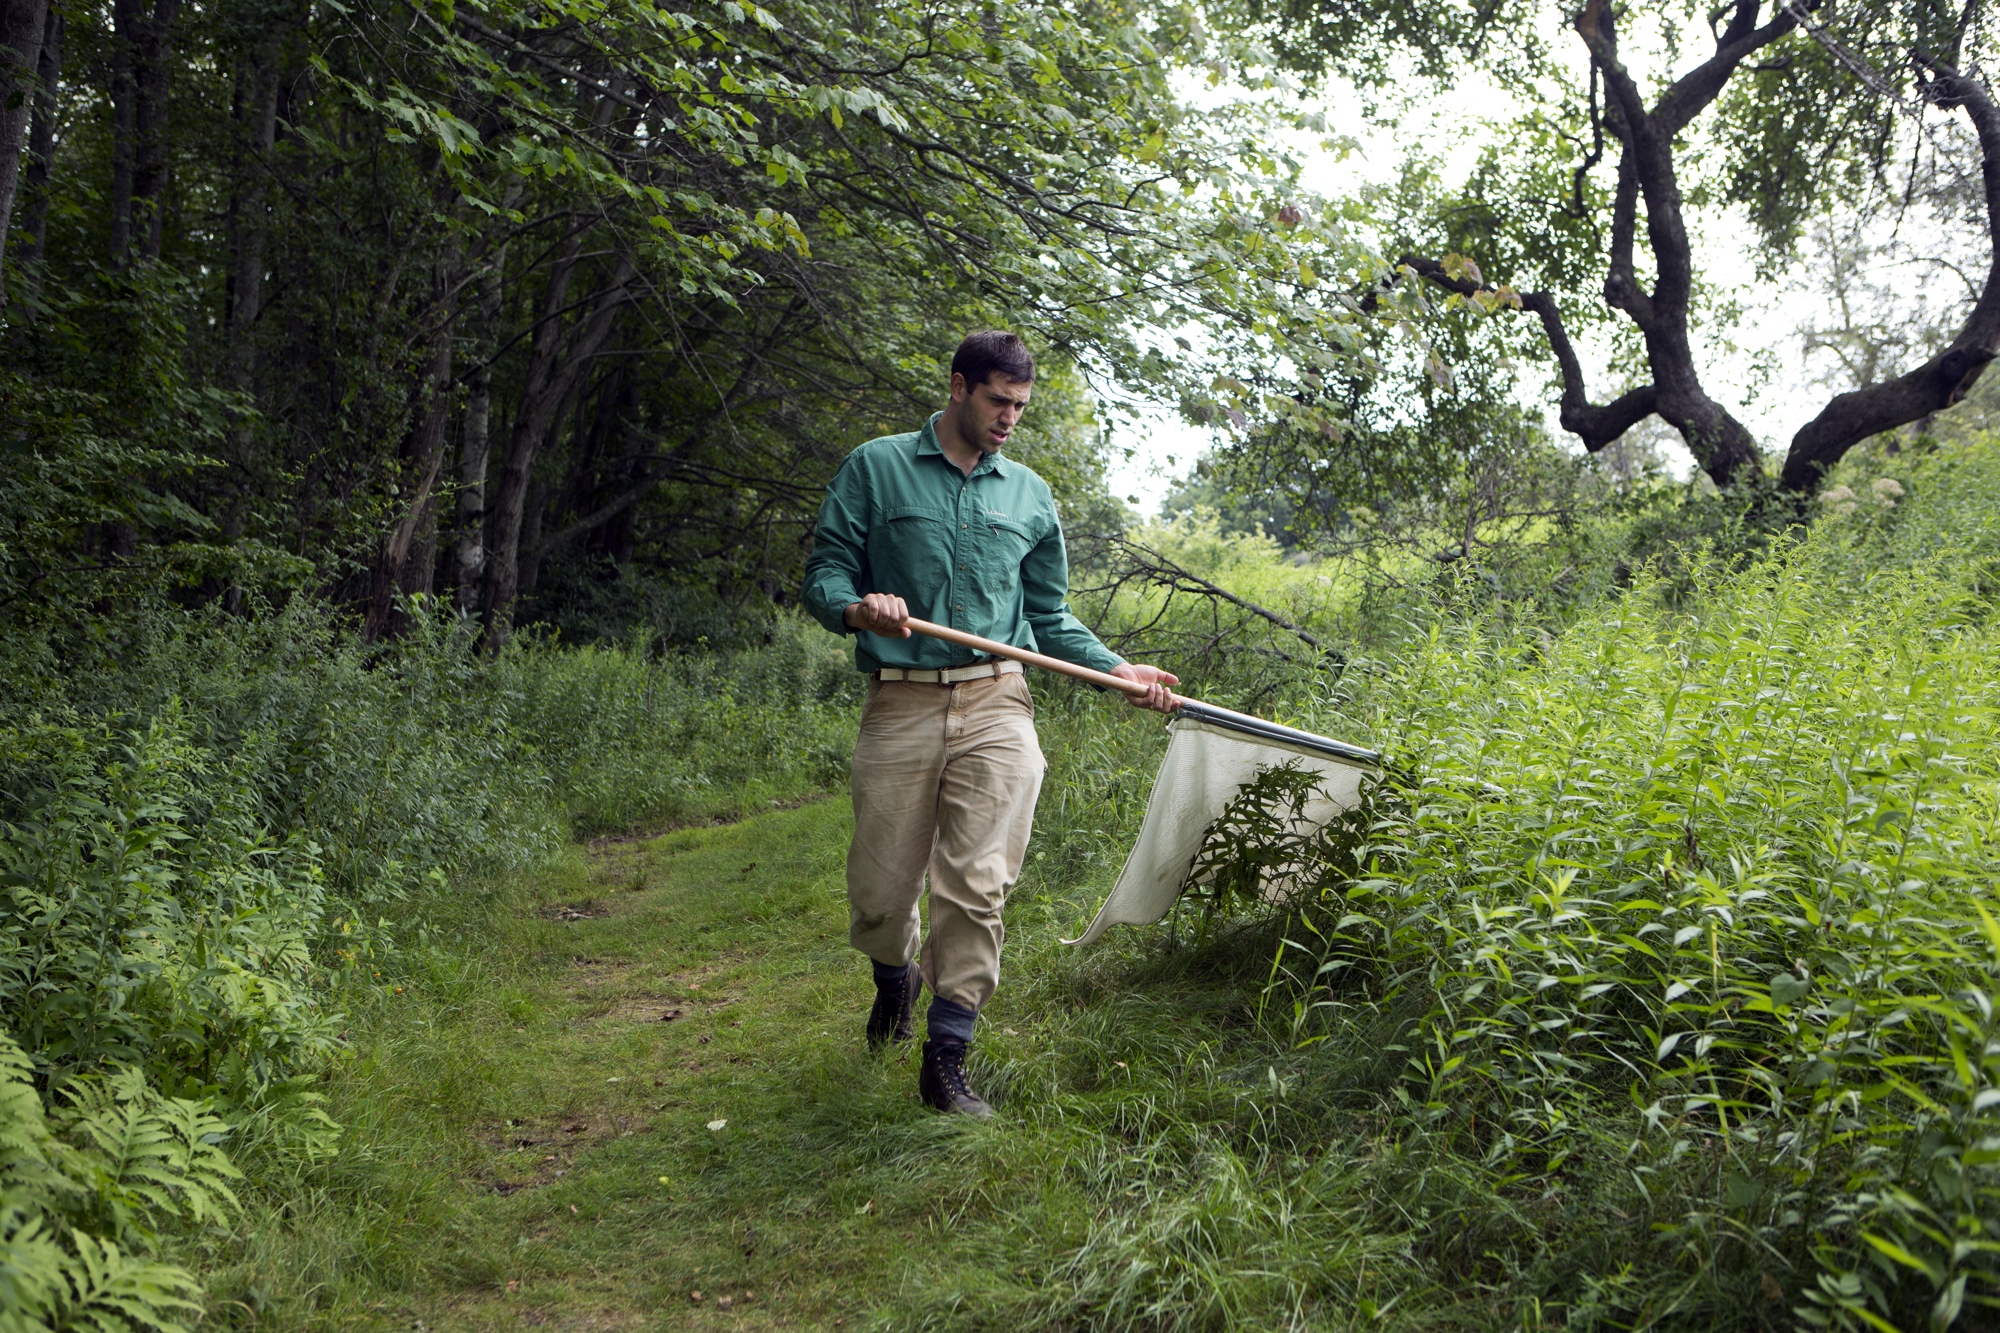 Ben Stone of the Vector-borne Disease Lab at Maine Medical Research Center Institute flags for ticks at Gilsland Farm Audubon Center in Falmouth, Maine on August 4.